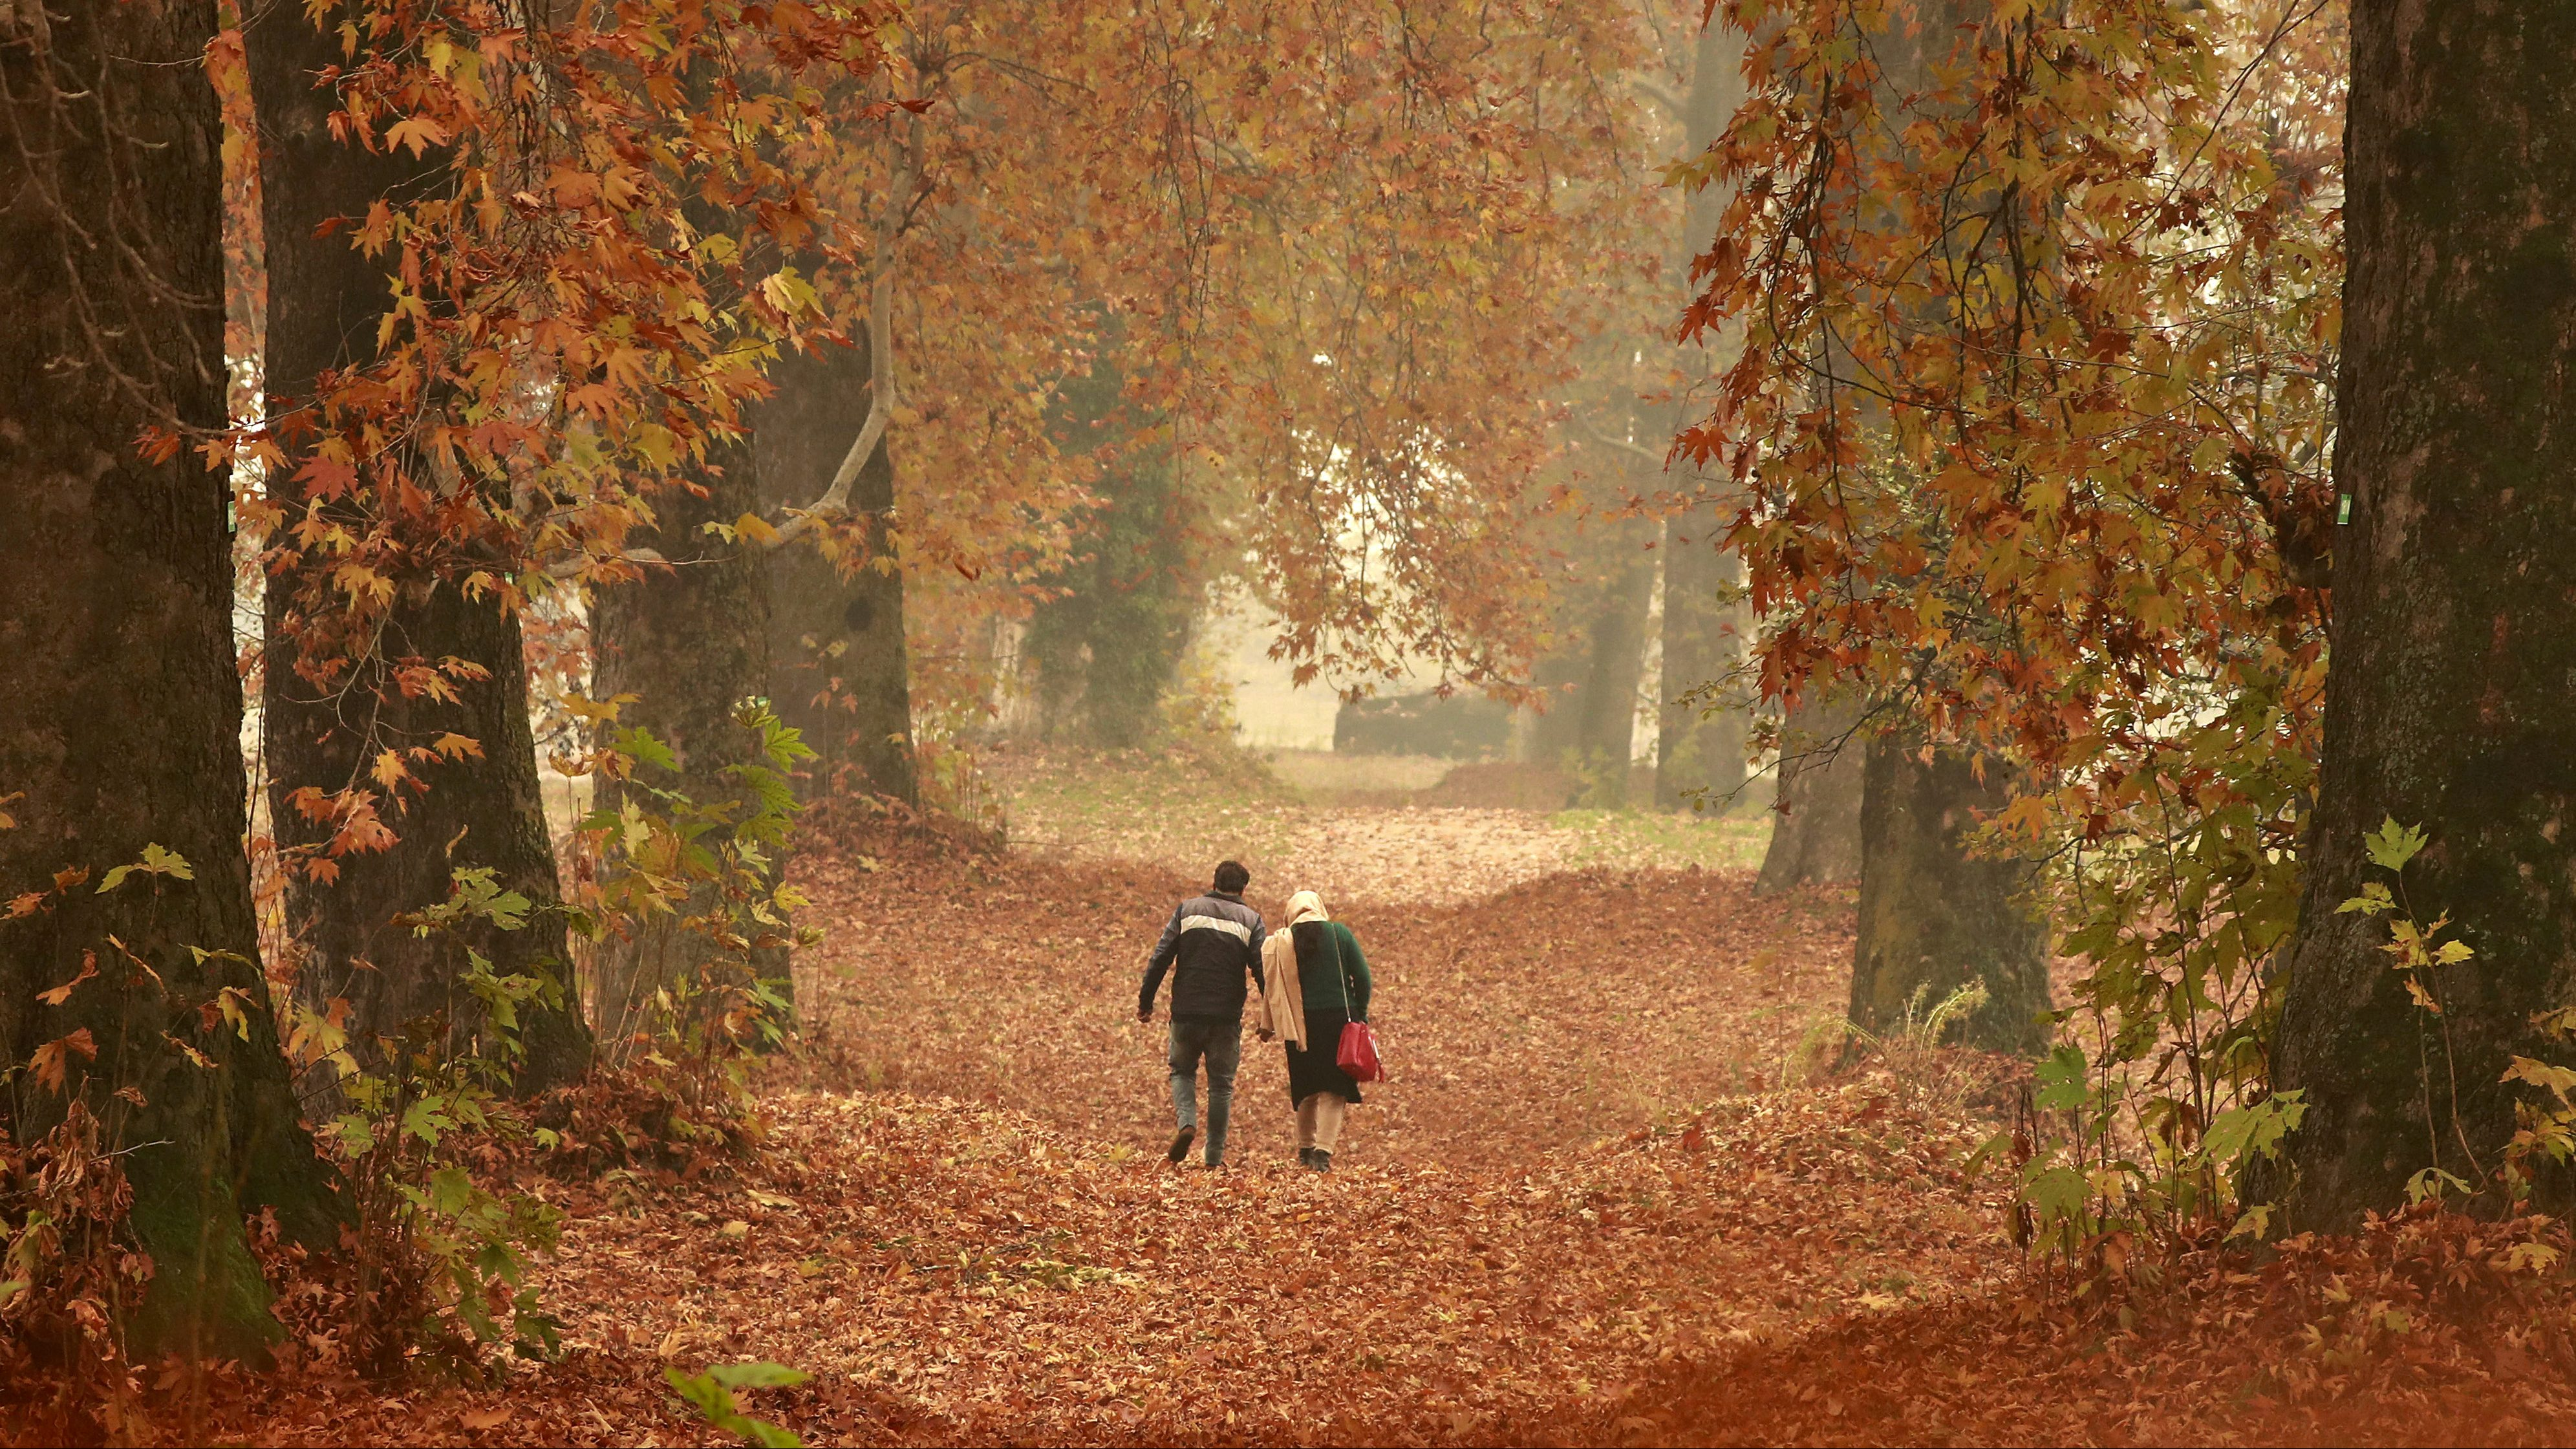 A couple walks amid fallen leaves of Chinar trees in a garden on an autumn day.